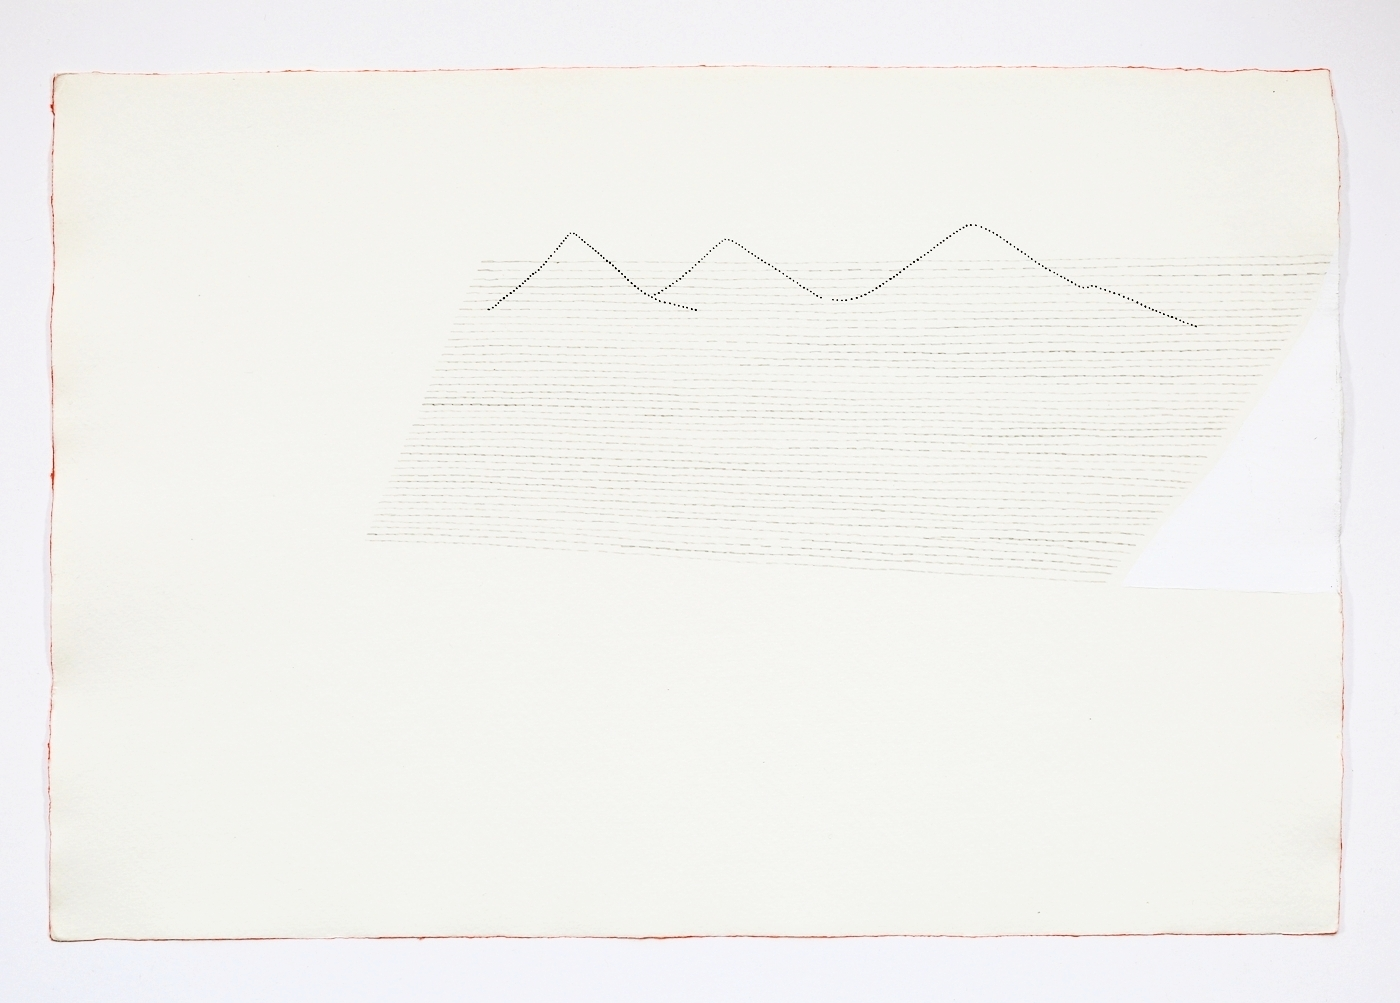 """Three Mountains. 2011. Ink on paper. 11"""" x 17"""""""